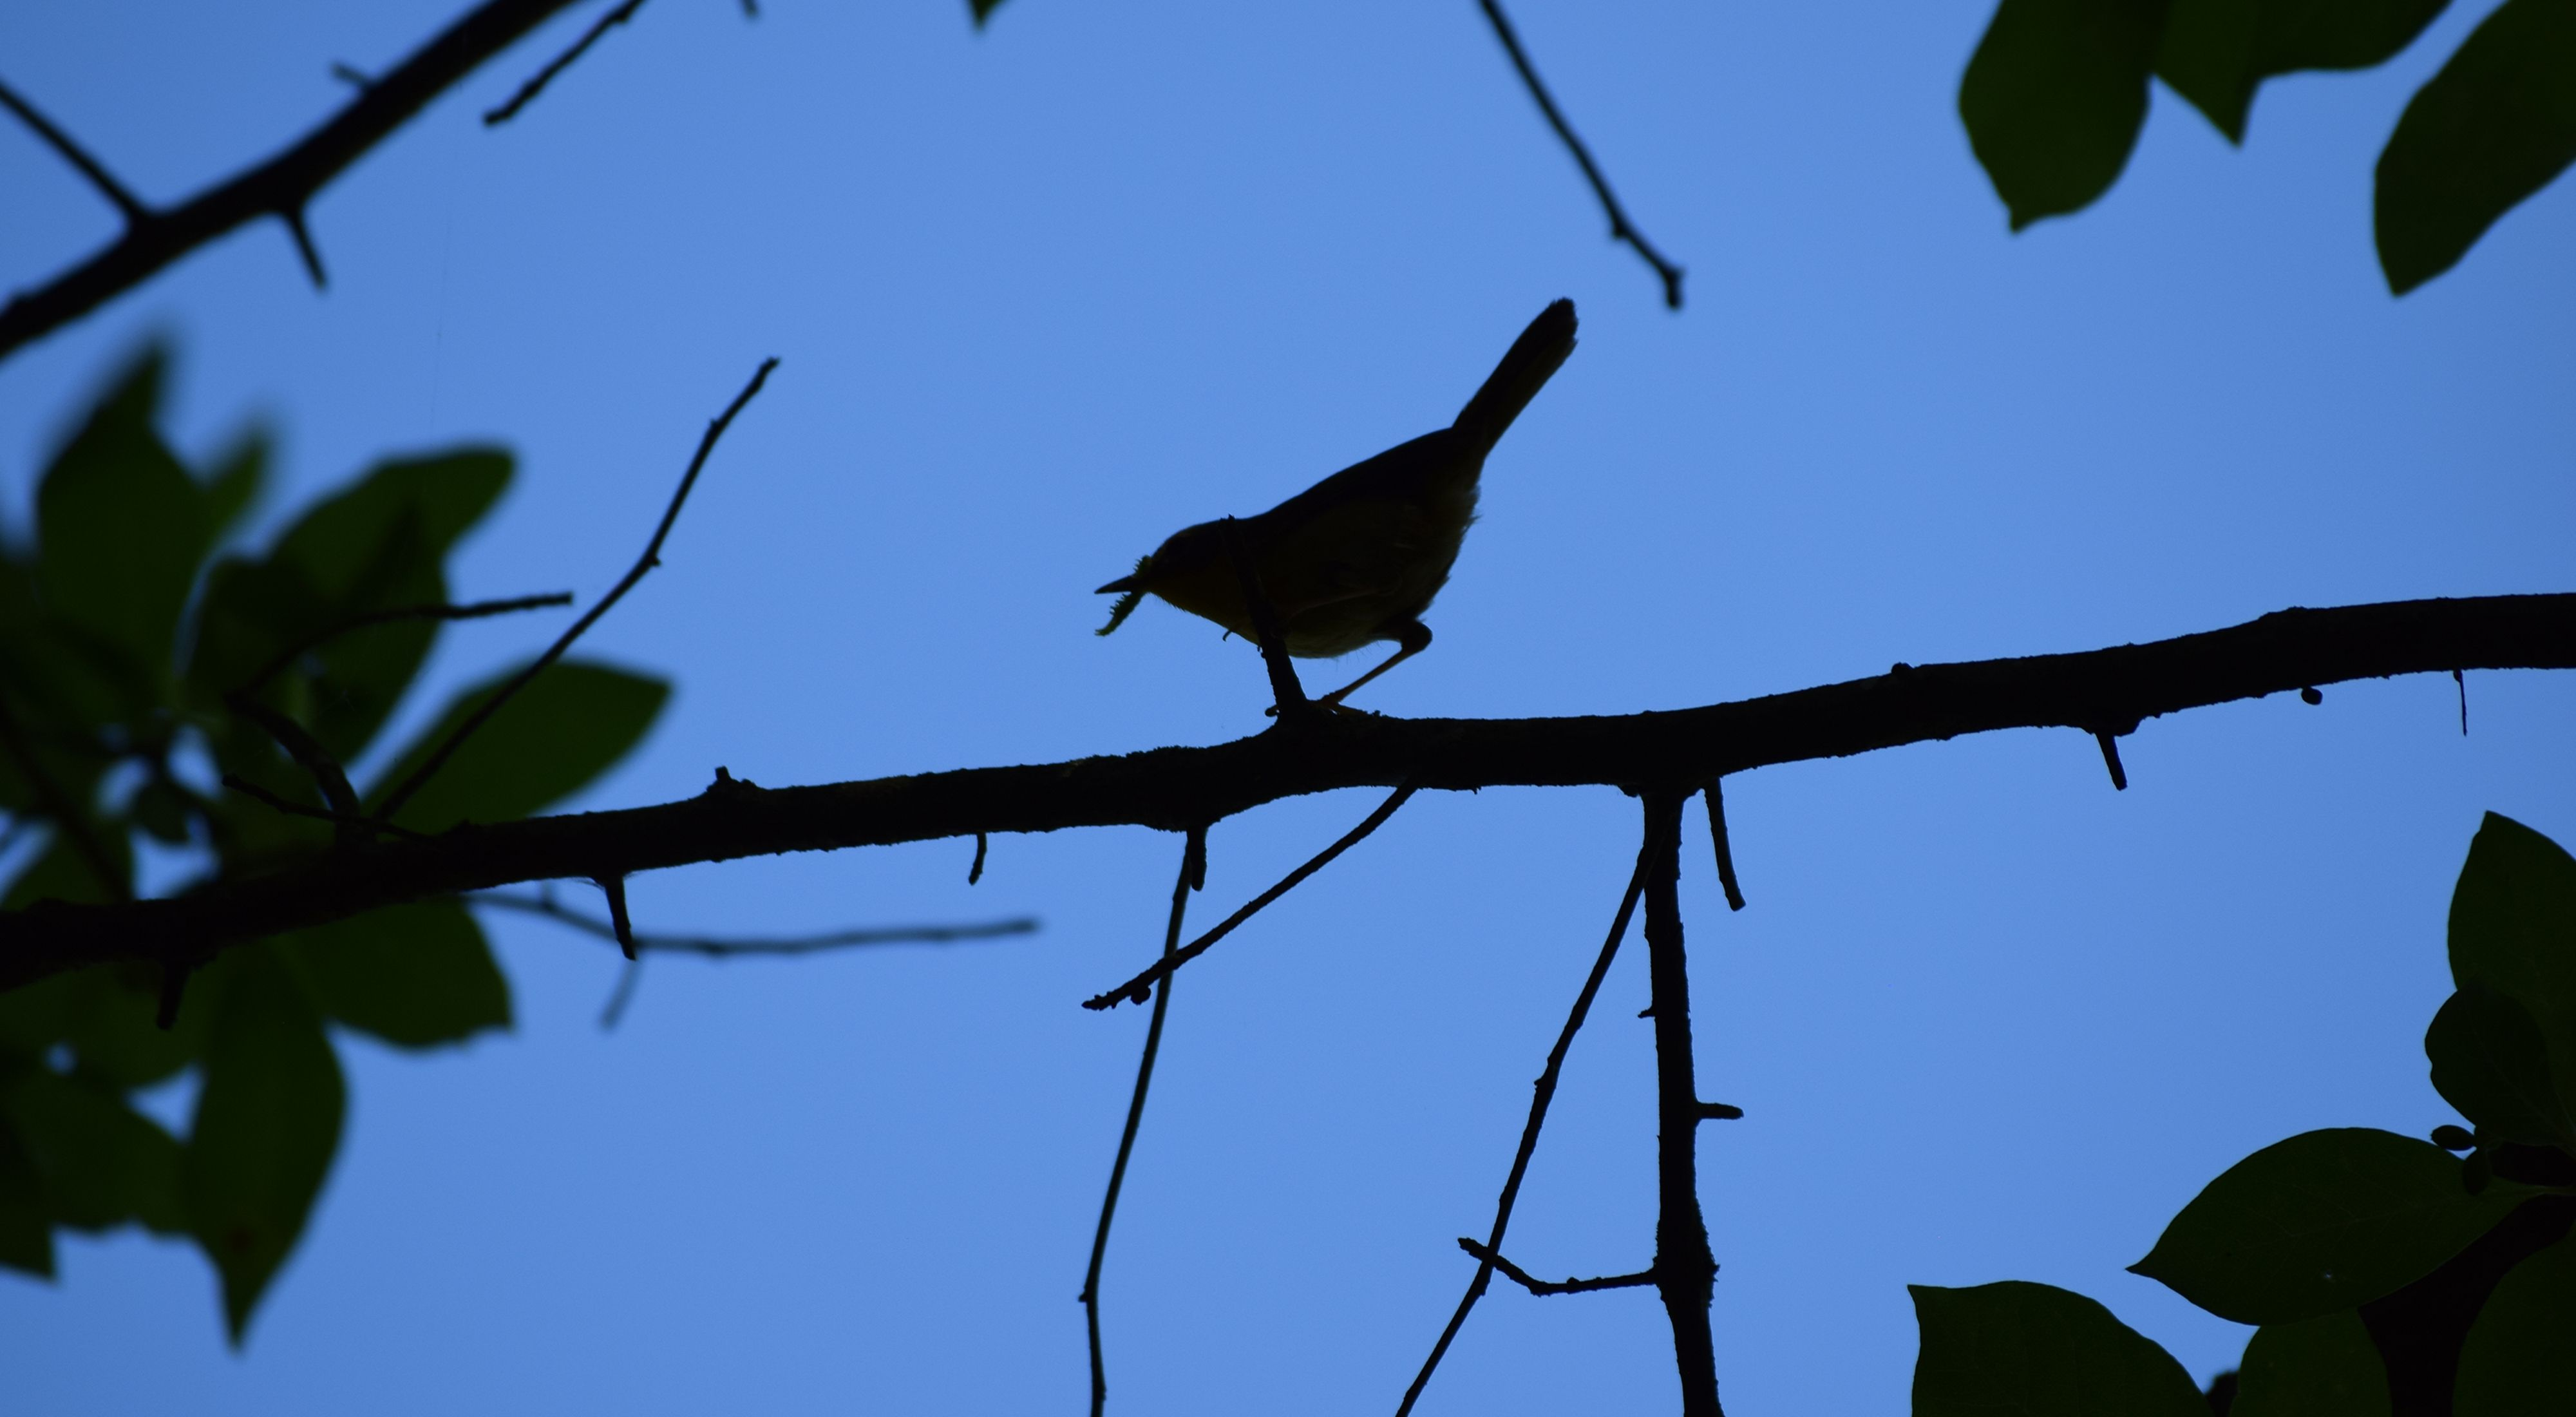 A bird is silhouetted against a dark blue sky. A bird holds an insect in its beak while perching on the branch of a tree. The bird and branches are in shadow showing as solid black against the sky.